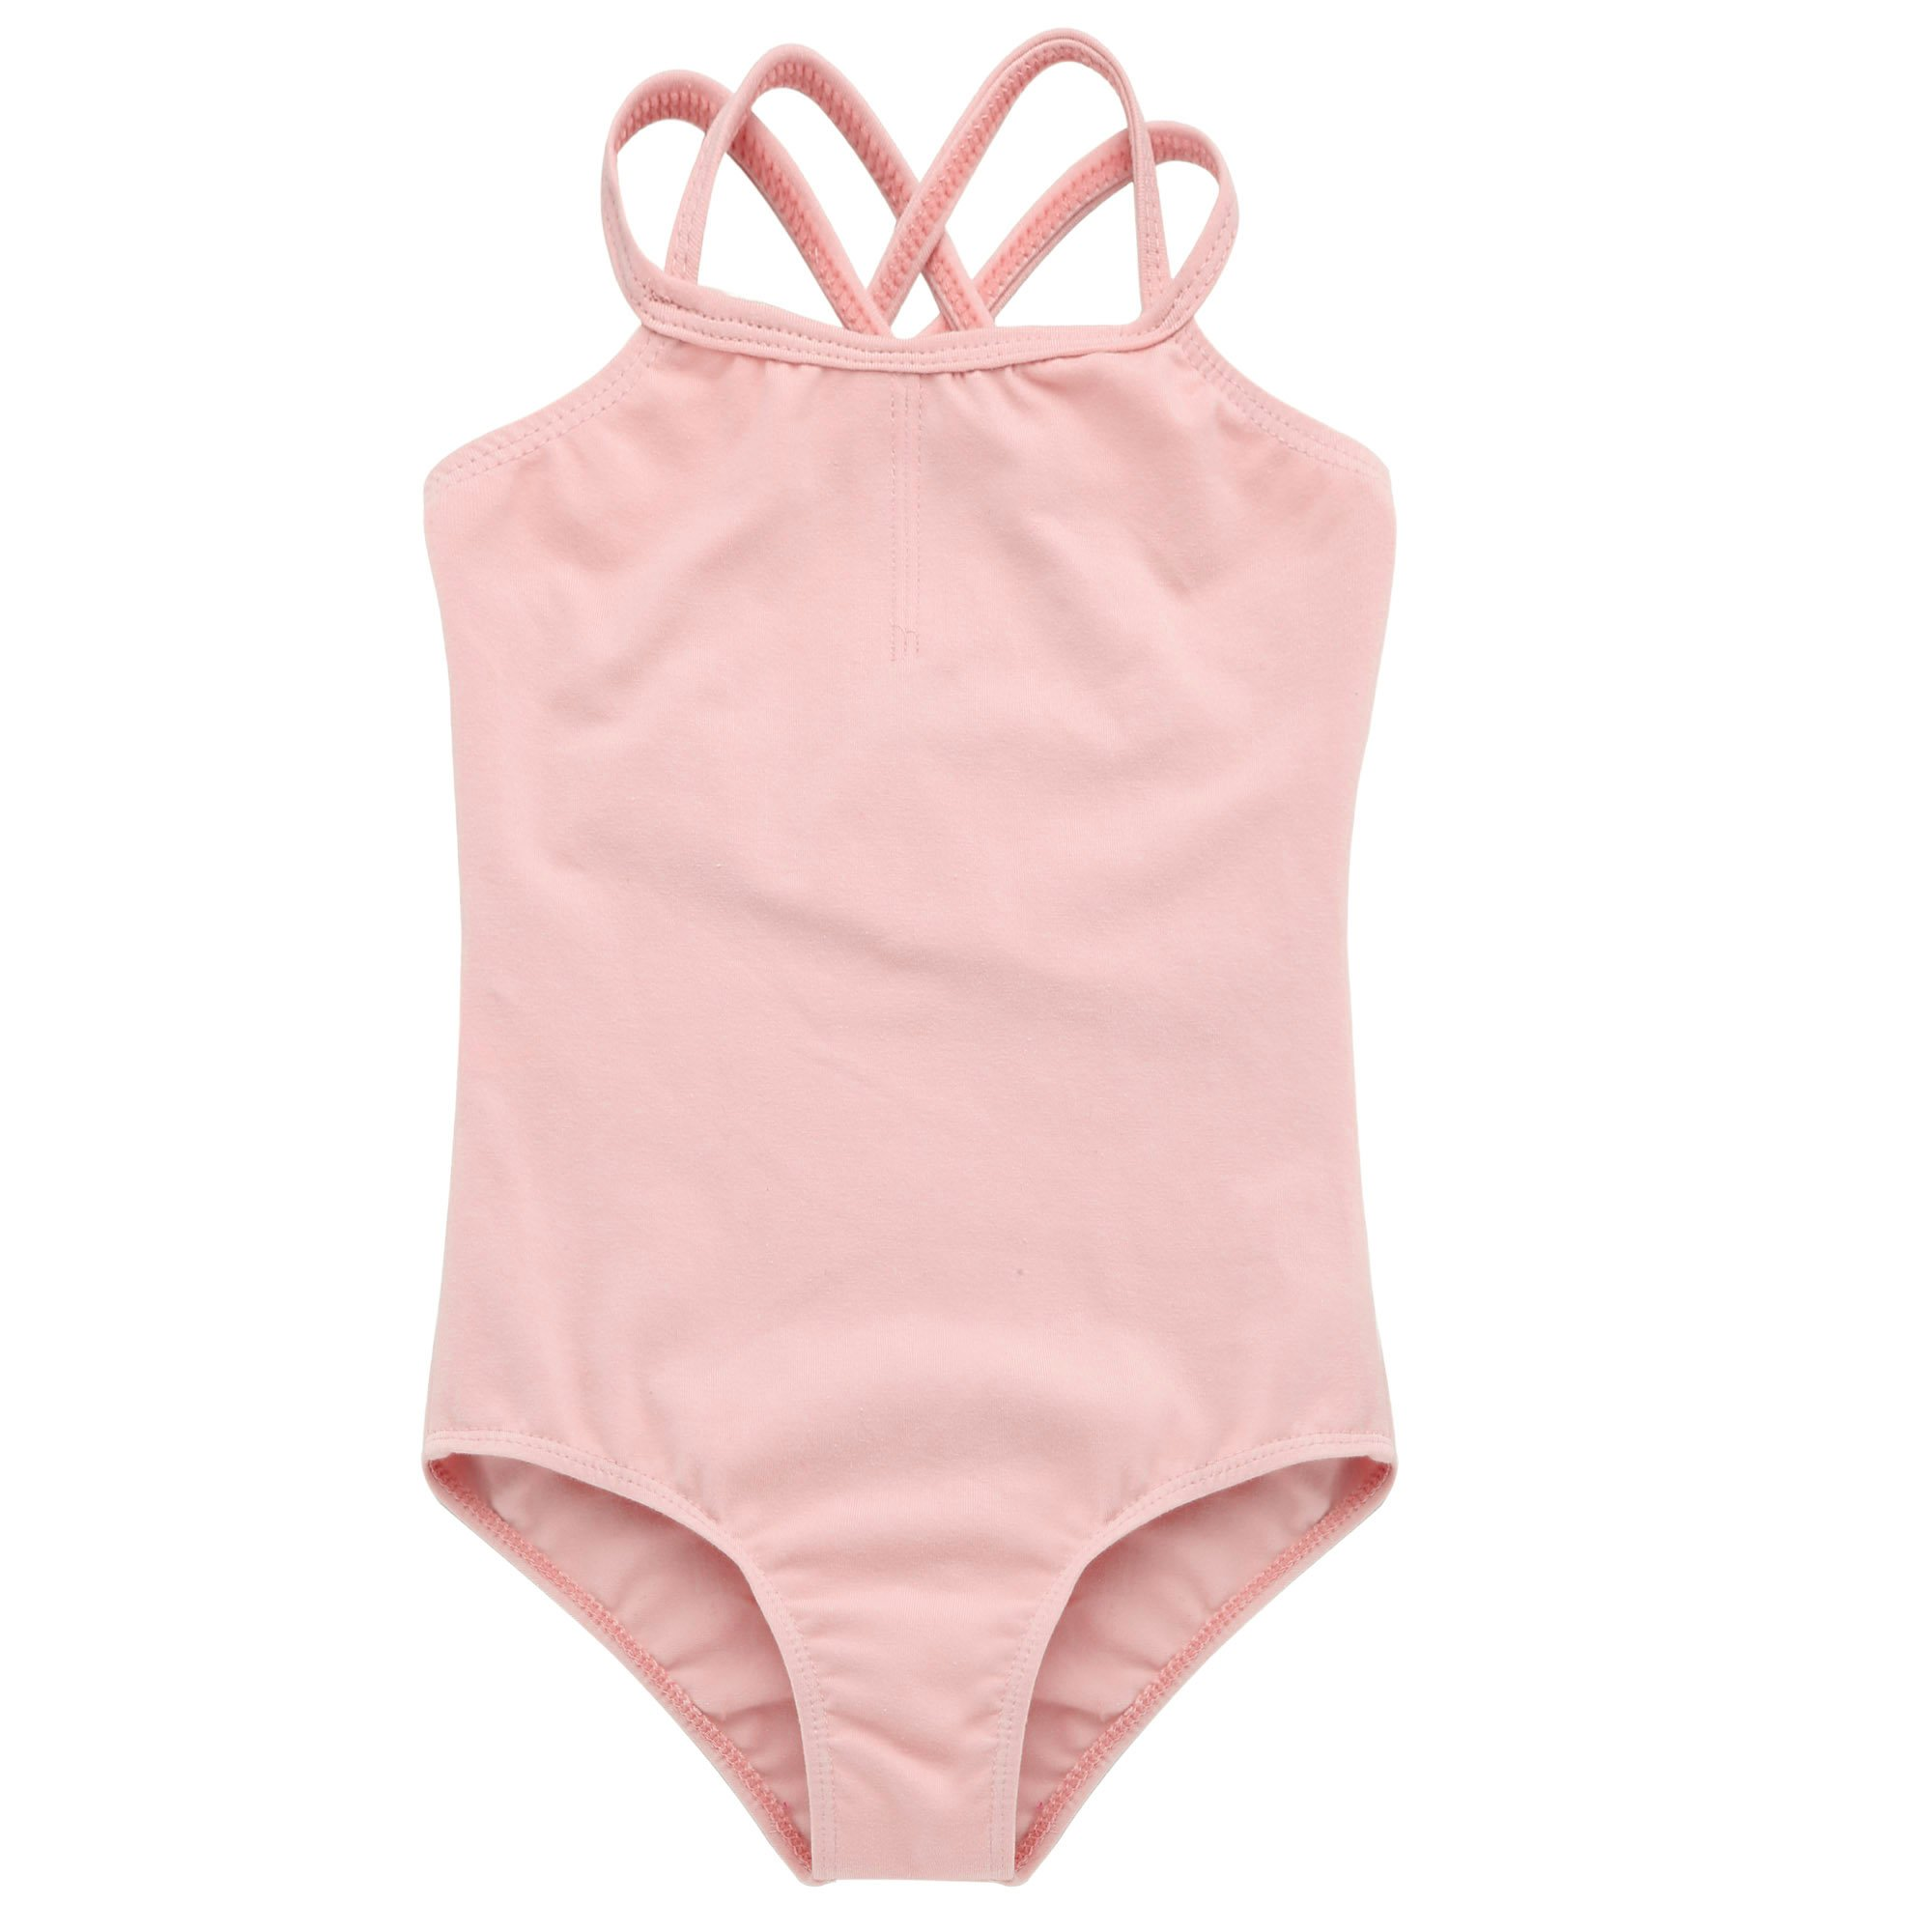 7e8110394 Arshiner Kids Girl s Double Strap Slim Solid Camisole Leotard